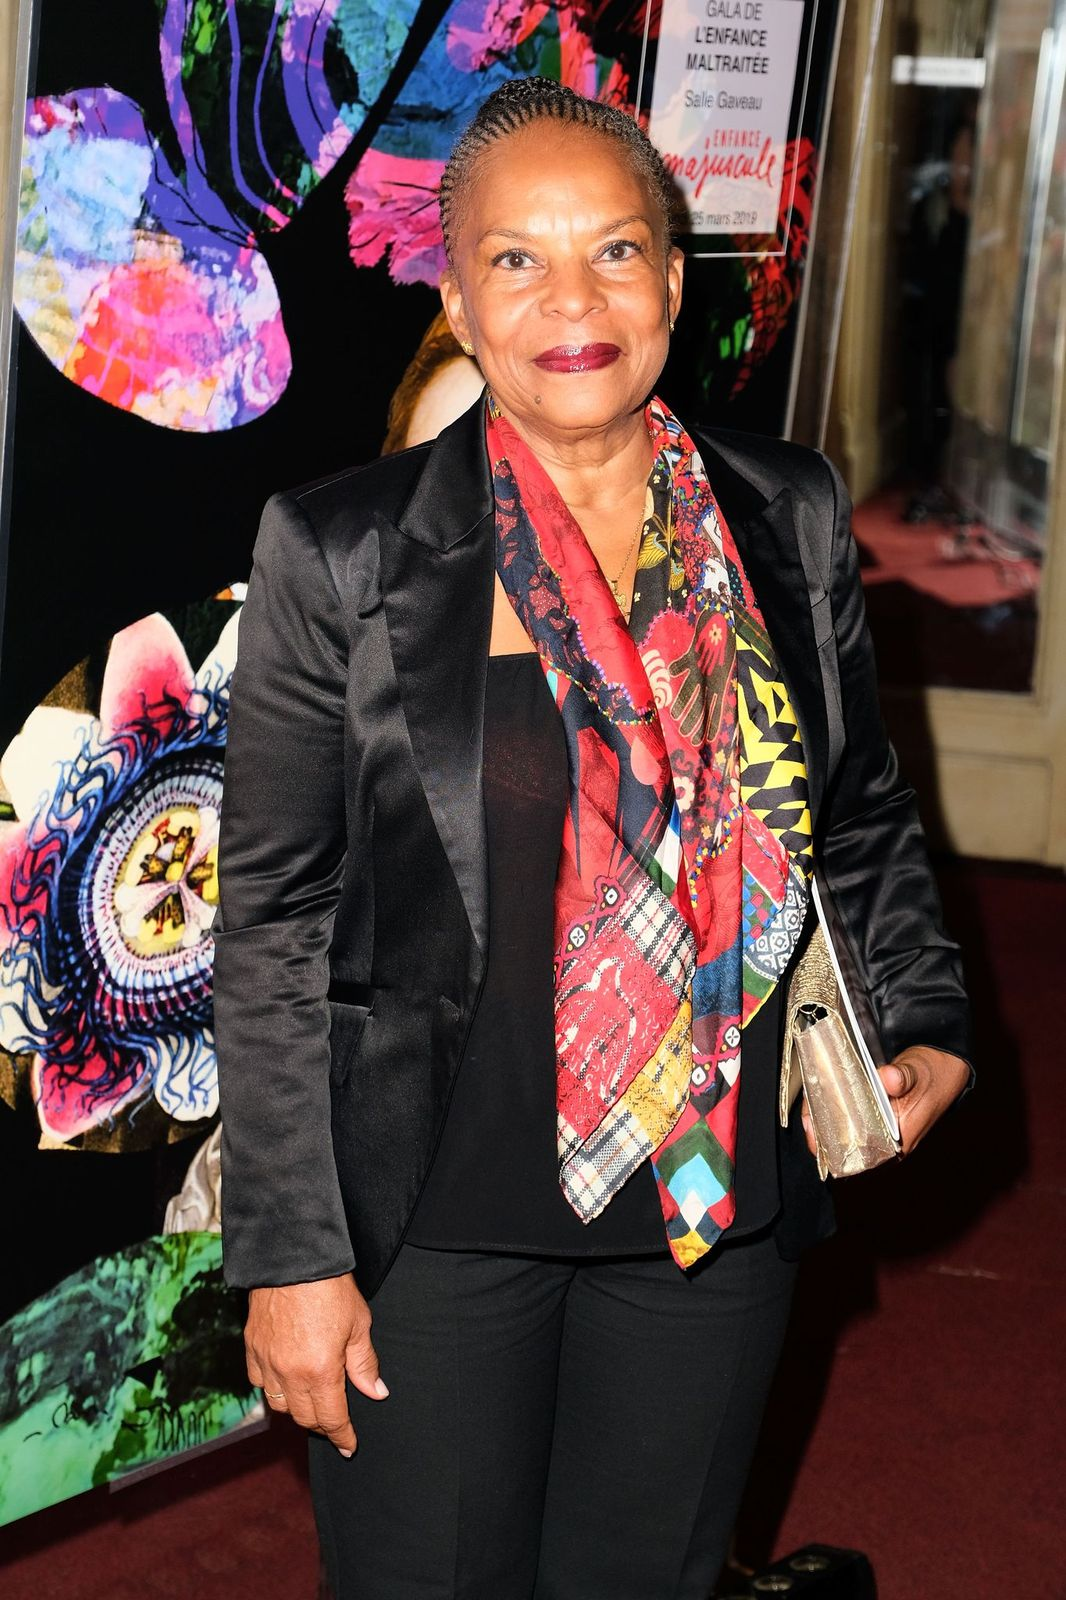 La femme politique Christiane Taubira | Photo : Getty Images.